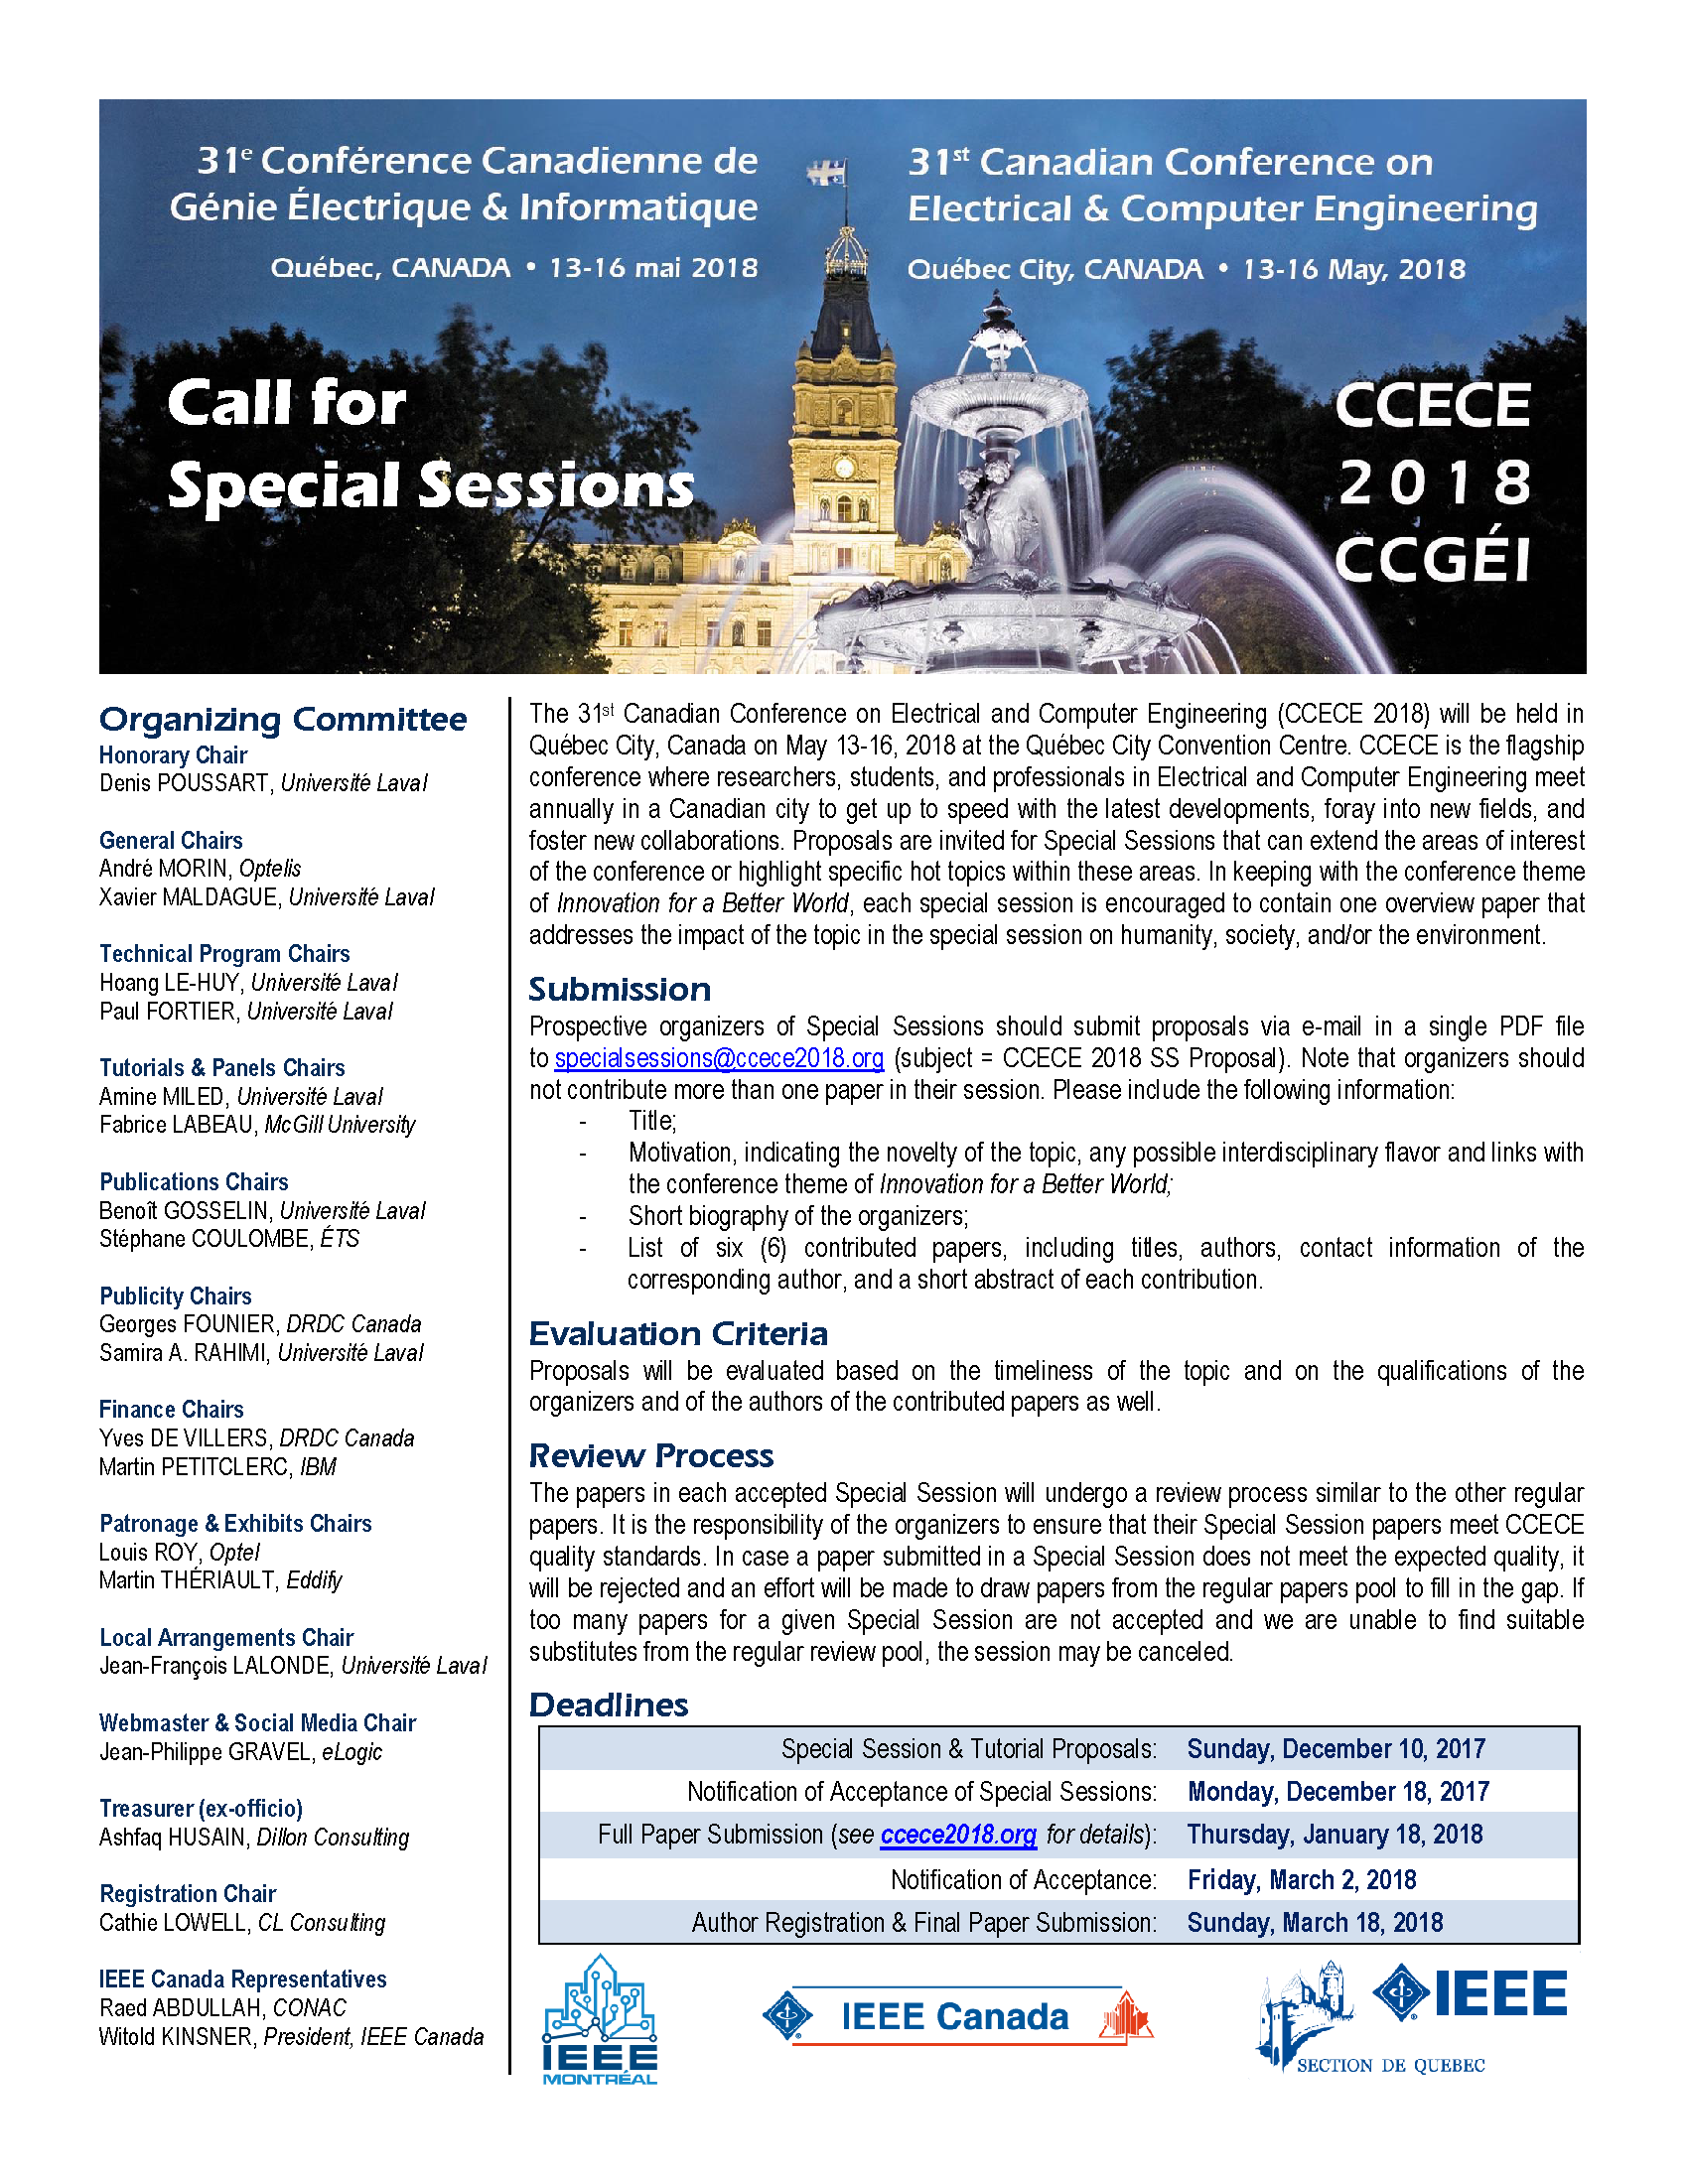 CCECE 2018 - Call for Special Sessions